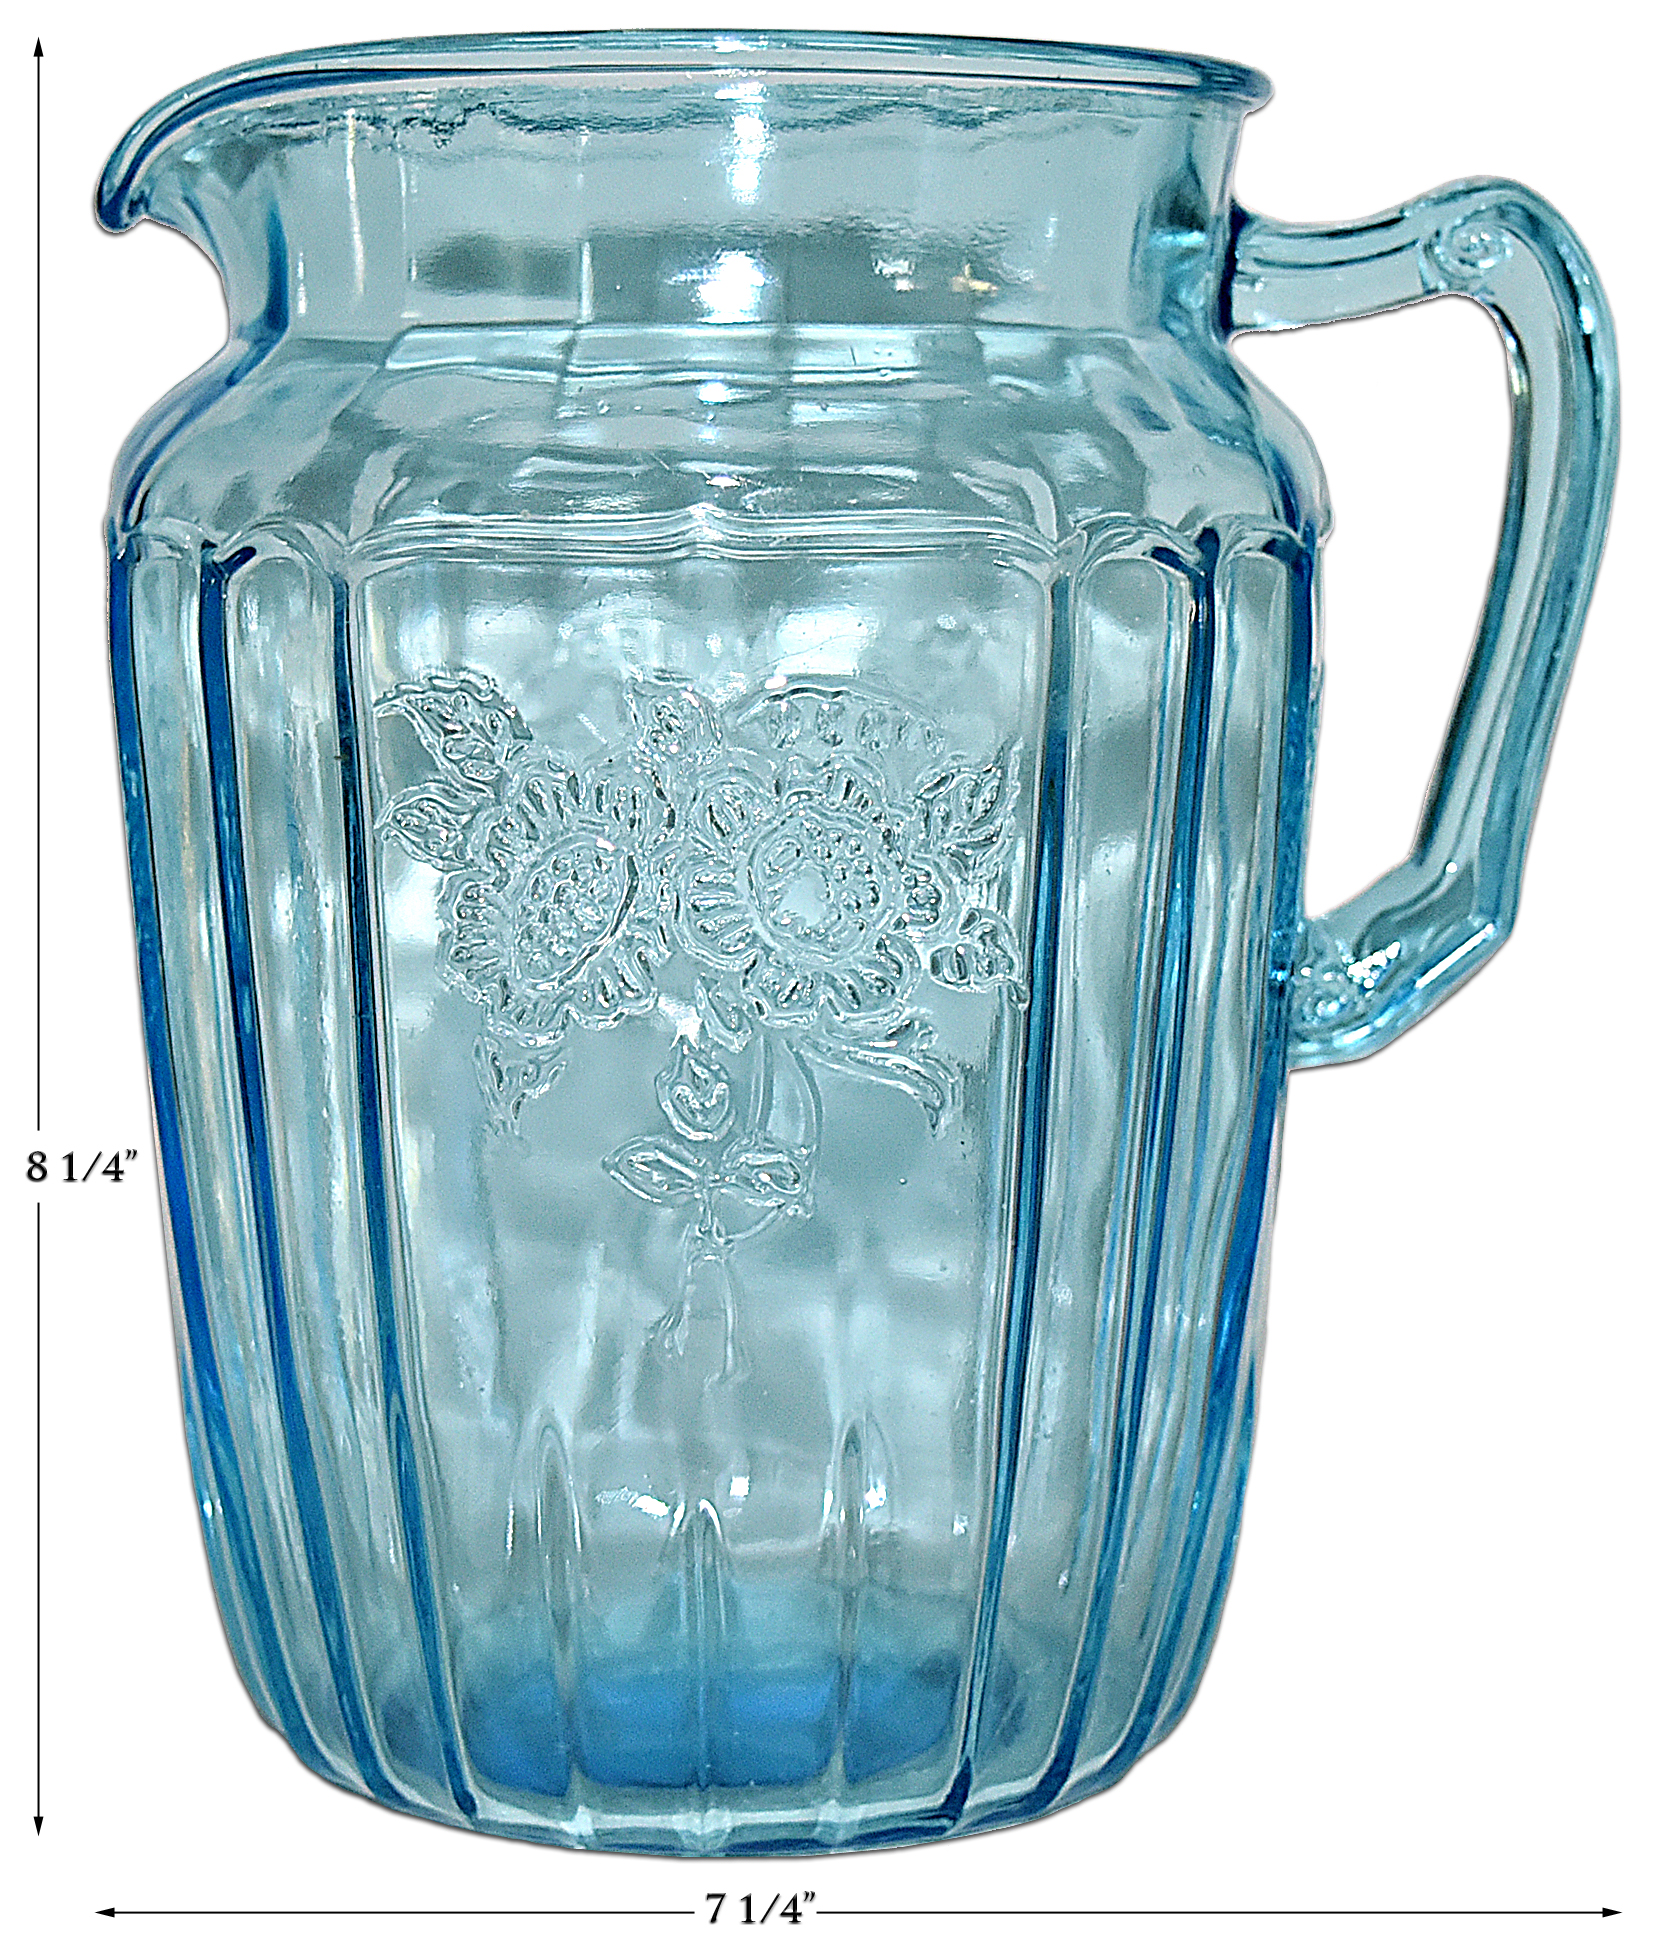 Hocking Blue Mayfair Large Pitcher / Jug